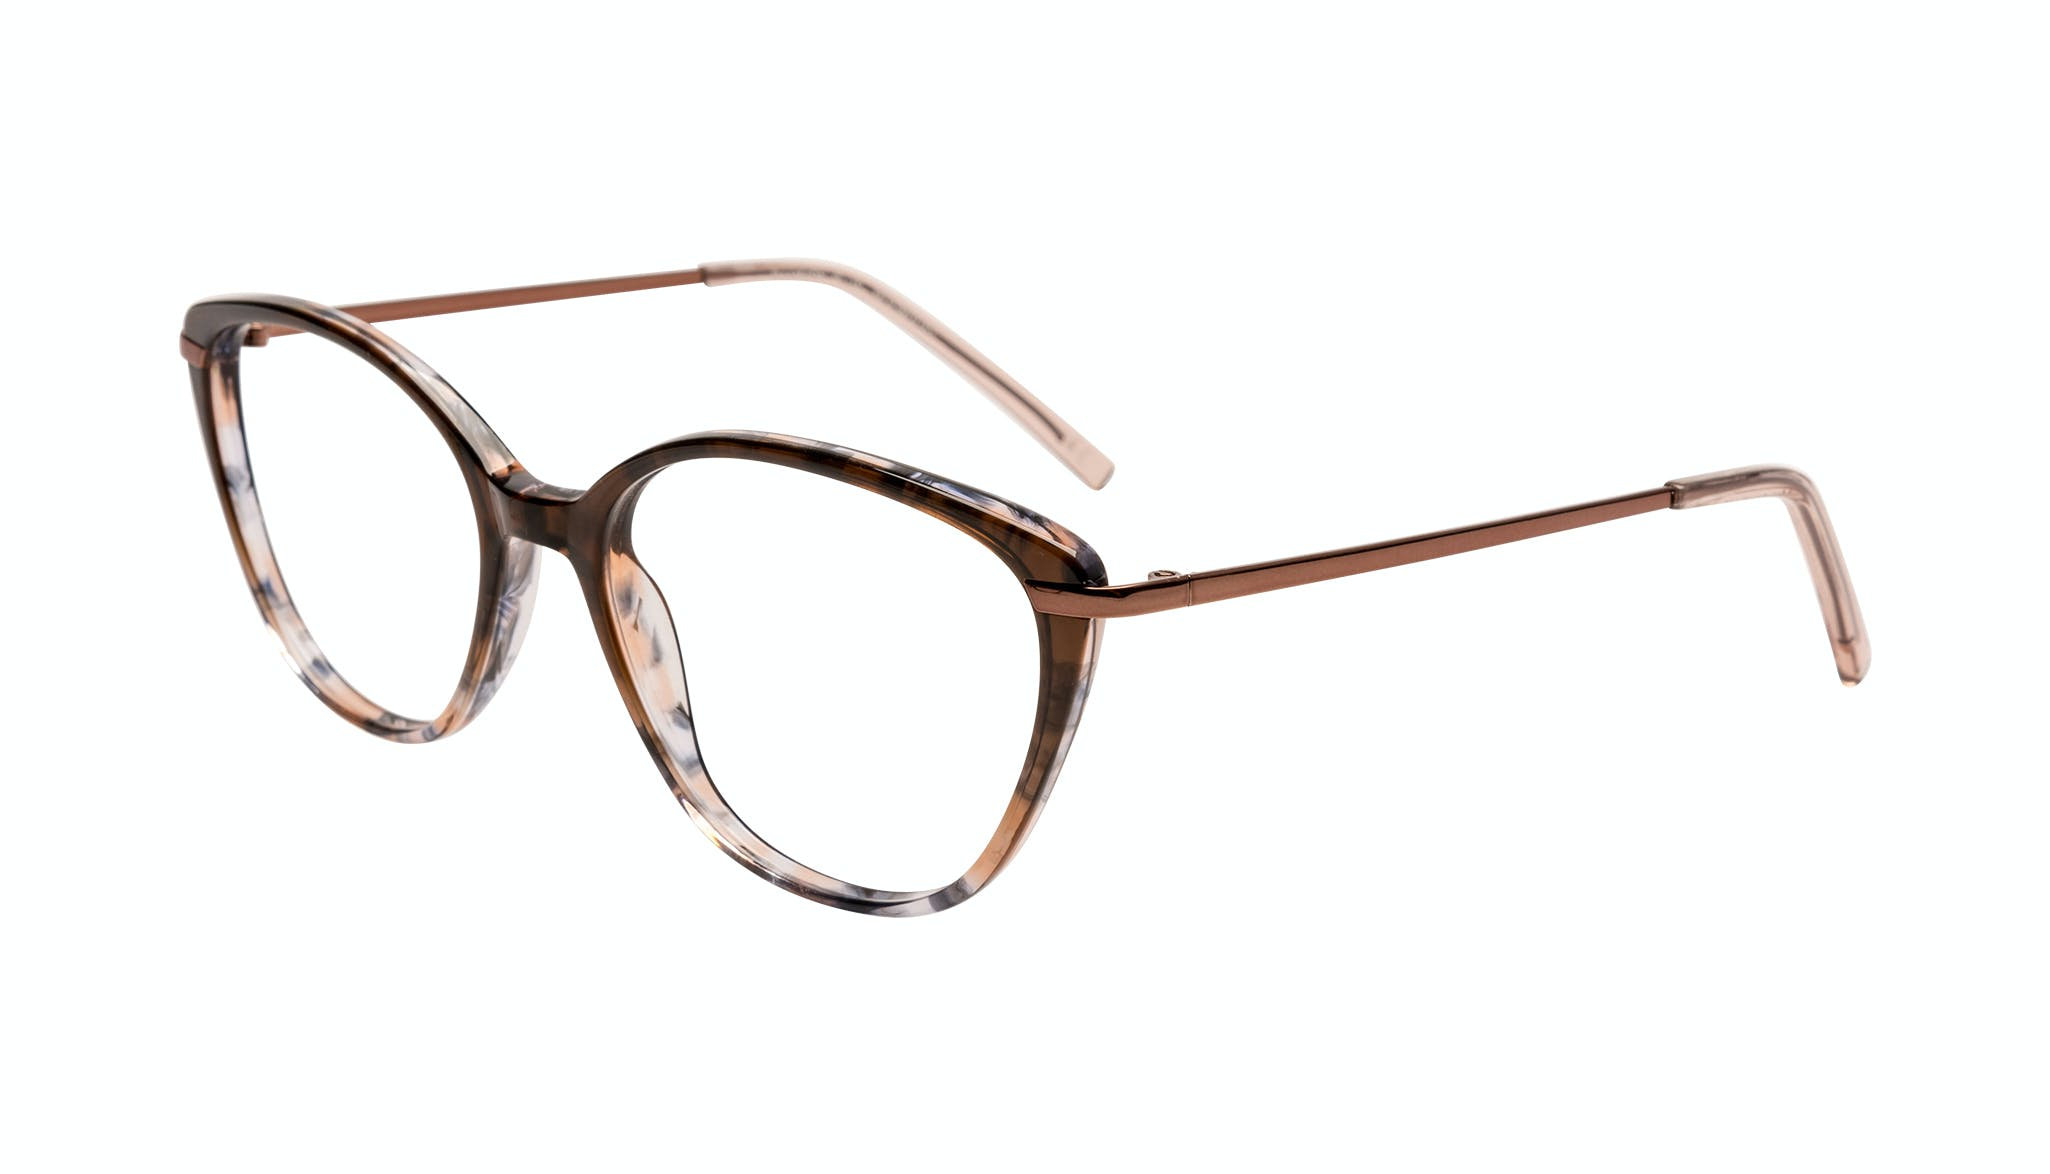 Affordable Fashion Glasses Cat Eye Eyeglasses Women Illusion Plus Moondust Tilt